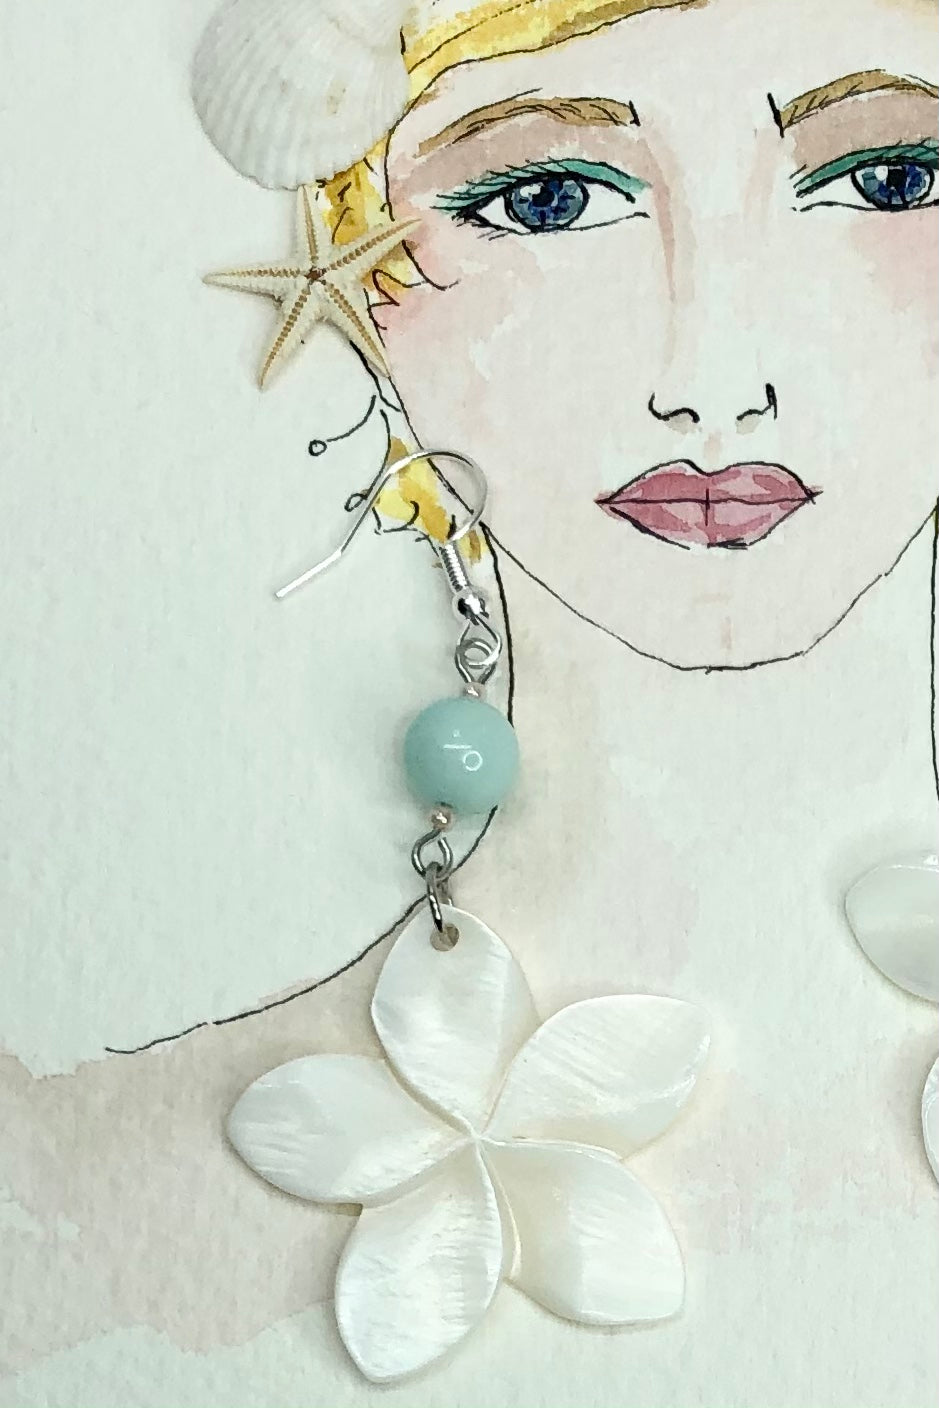 these earrings with frangipani flowers hand carved from Mother of Pearl shell all carry the distinctive marks of the artist who created them,